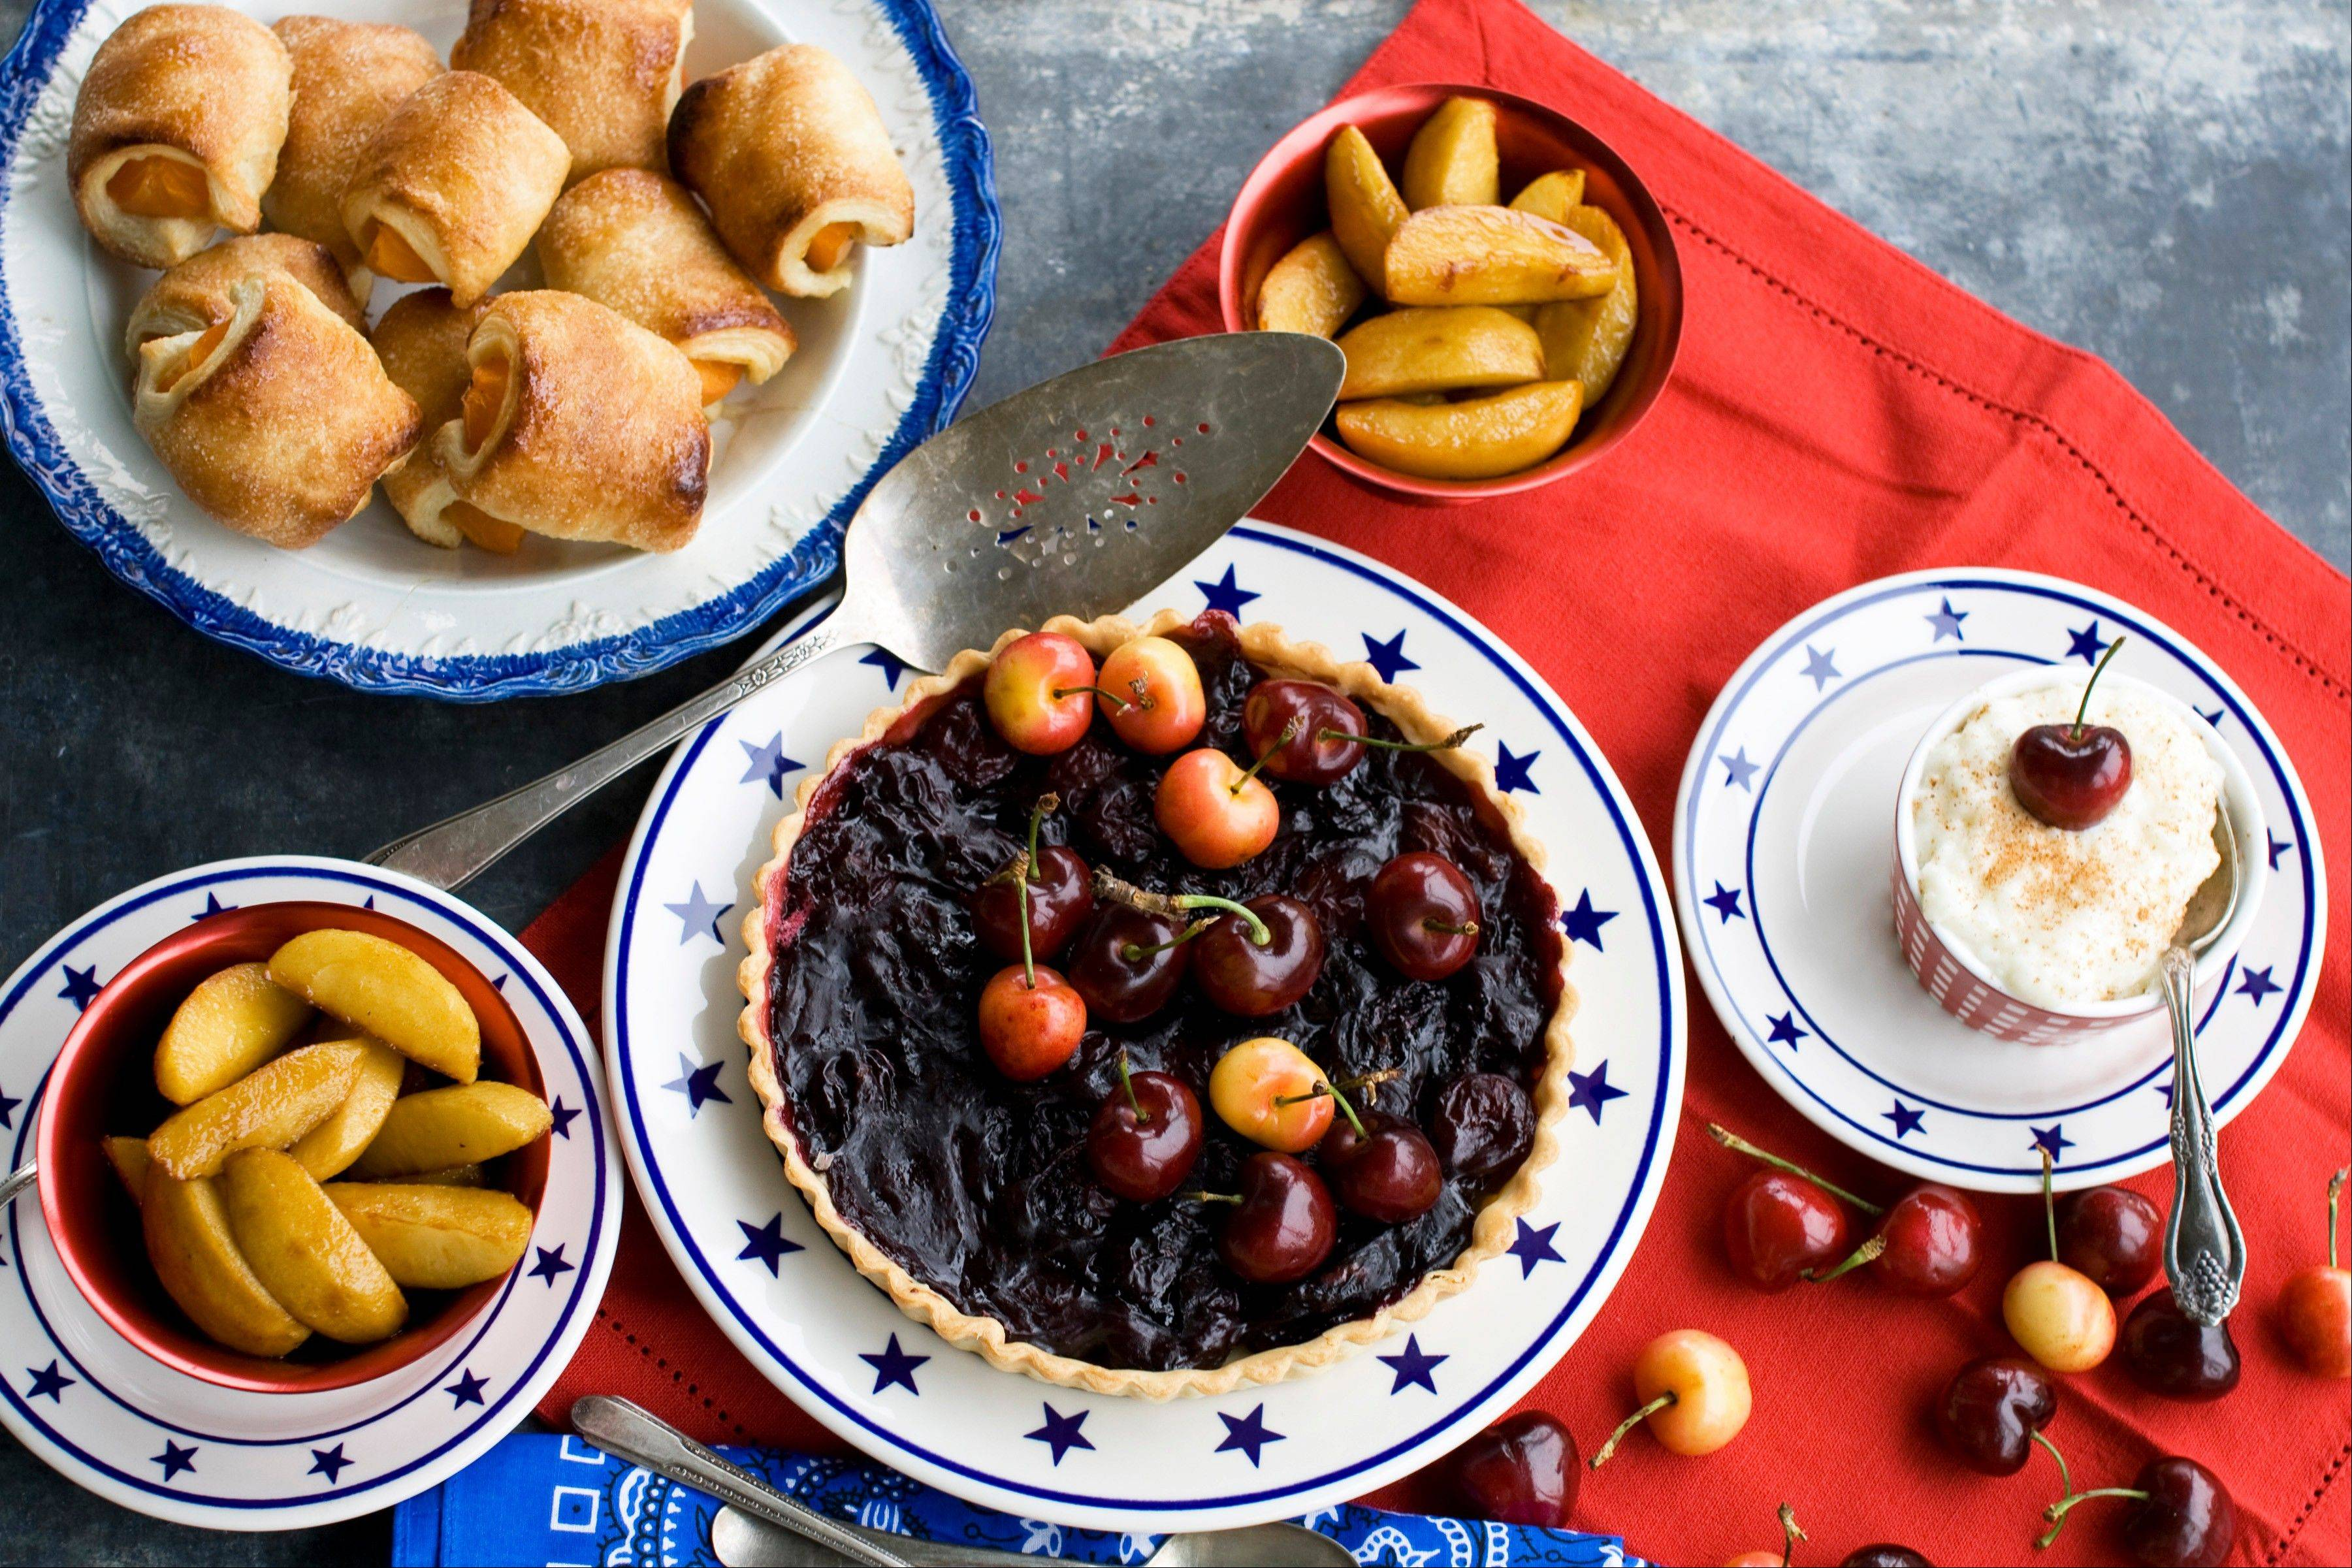 Cherry pie, clockwise from top right, blaized pippins (apples), apricot puffs and custard are foods the country's Founding Fathers might have eaten on July Fourth.